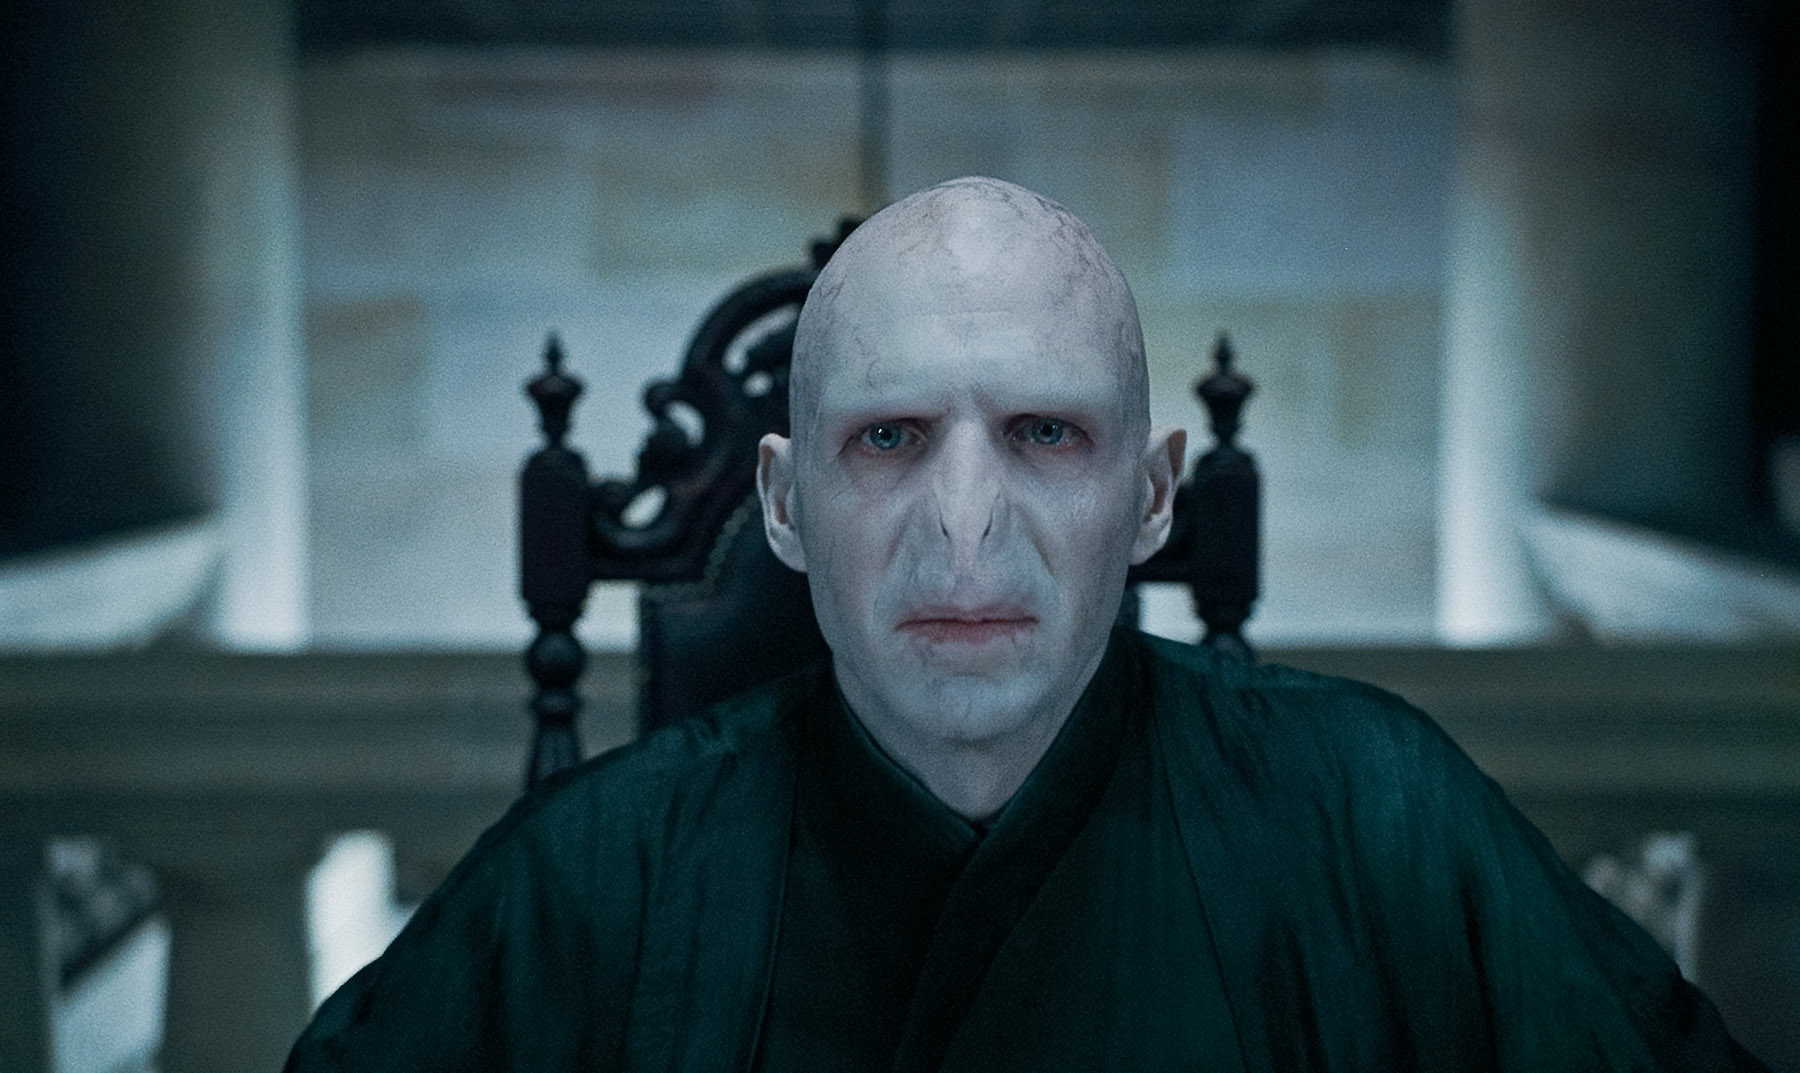 Lord Voldemort From Harry Potter Deathly Hallows Wallpaper Click